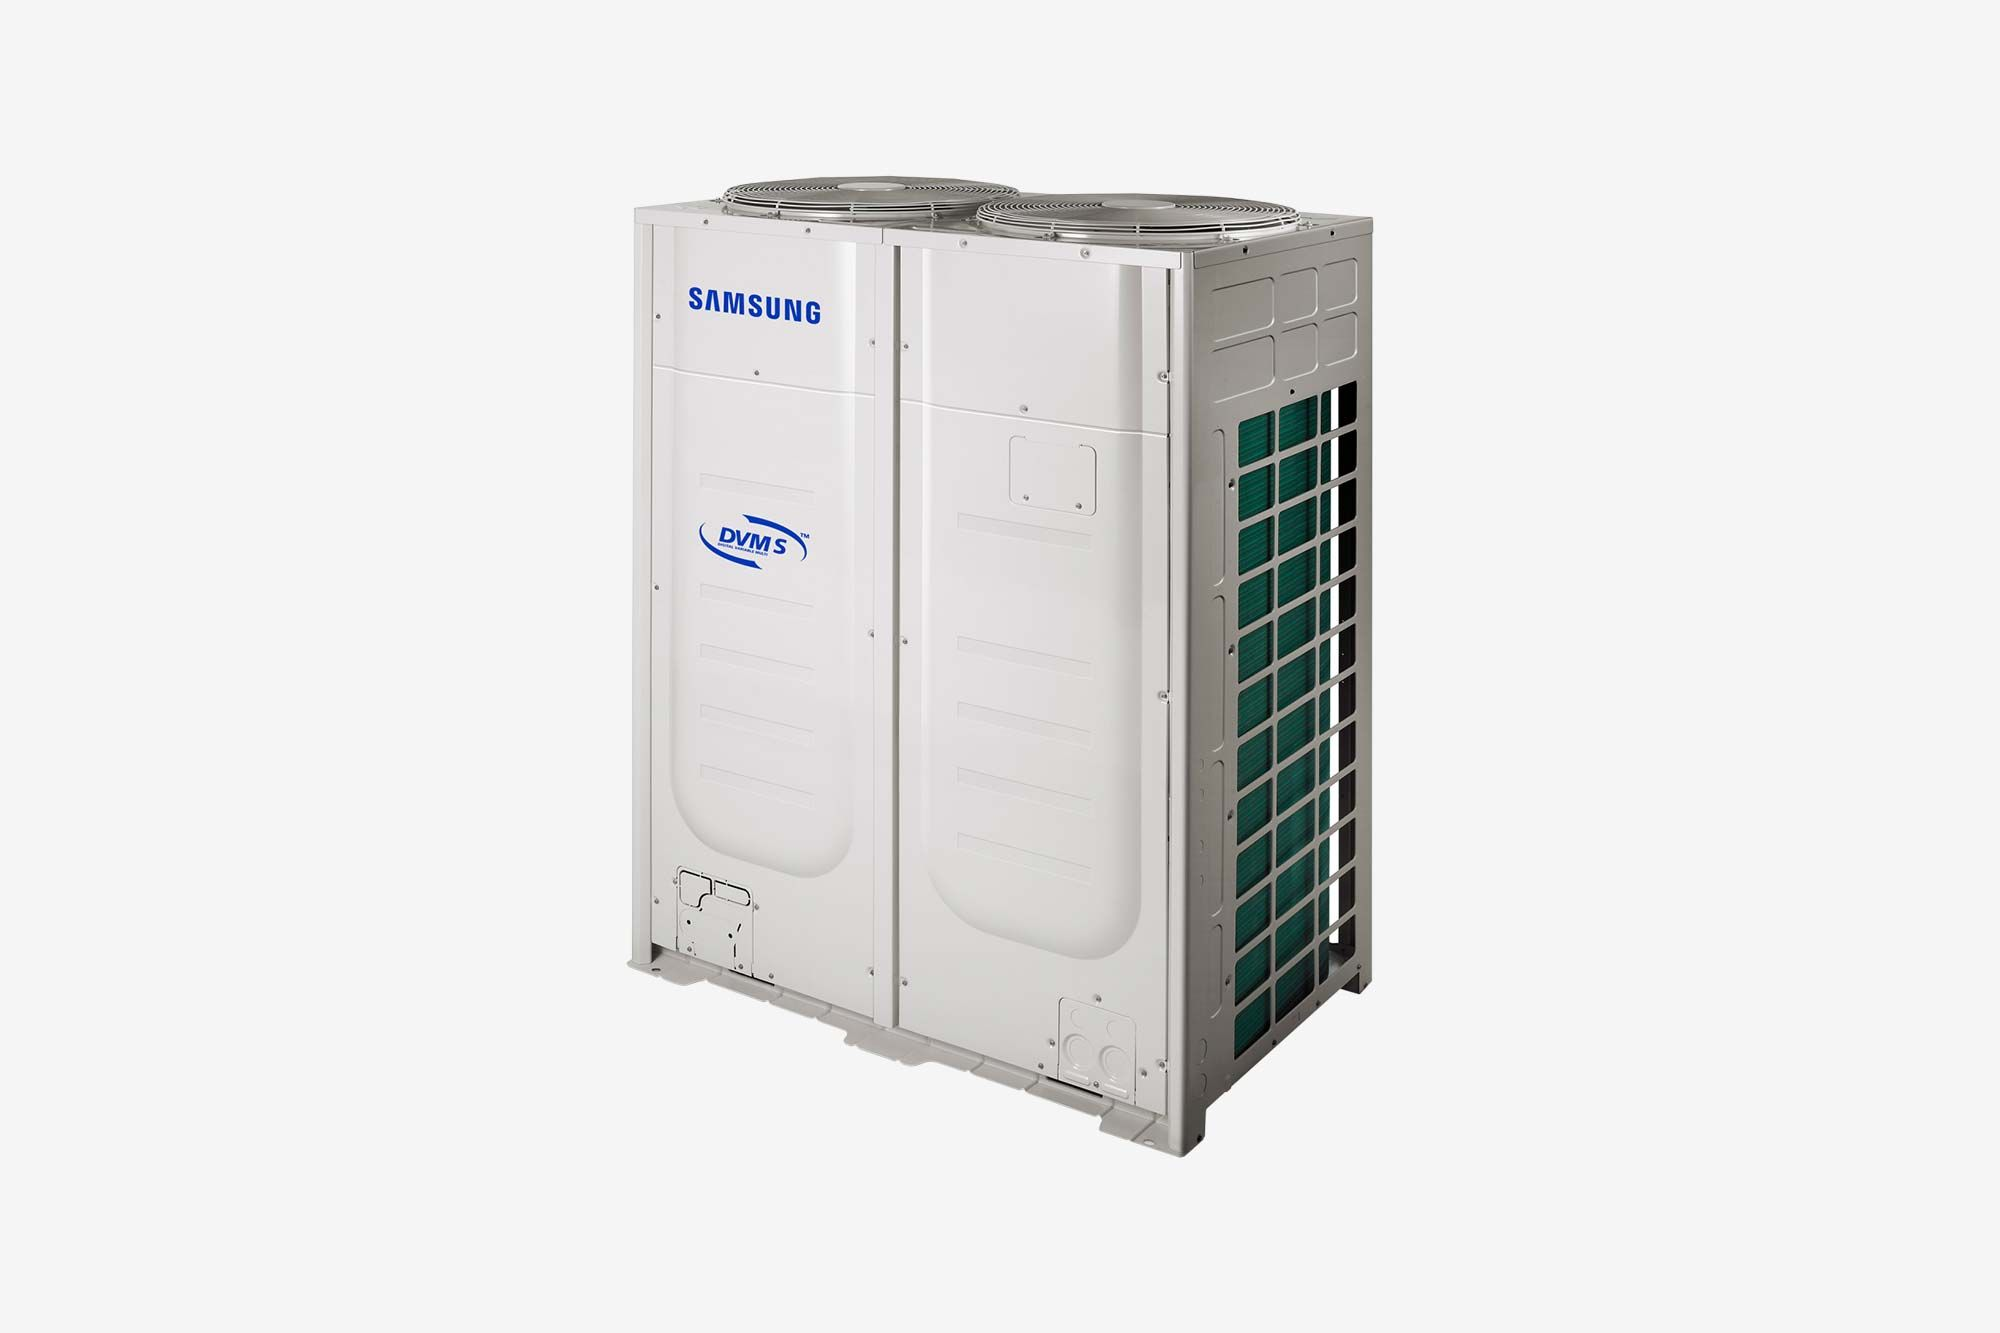 Samsung-Commercial-Dvm-S-Max-Heat